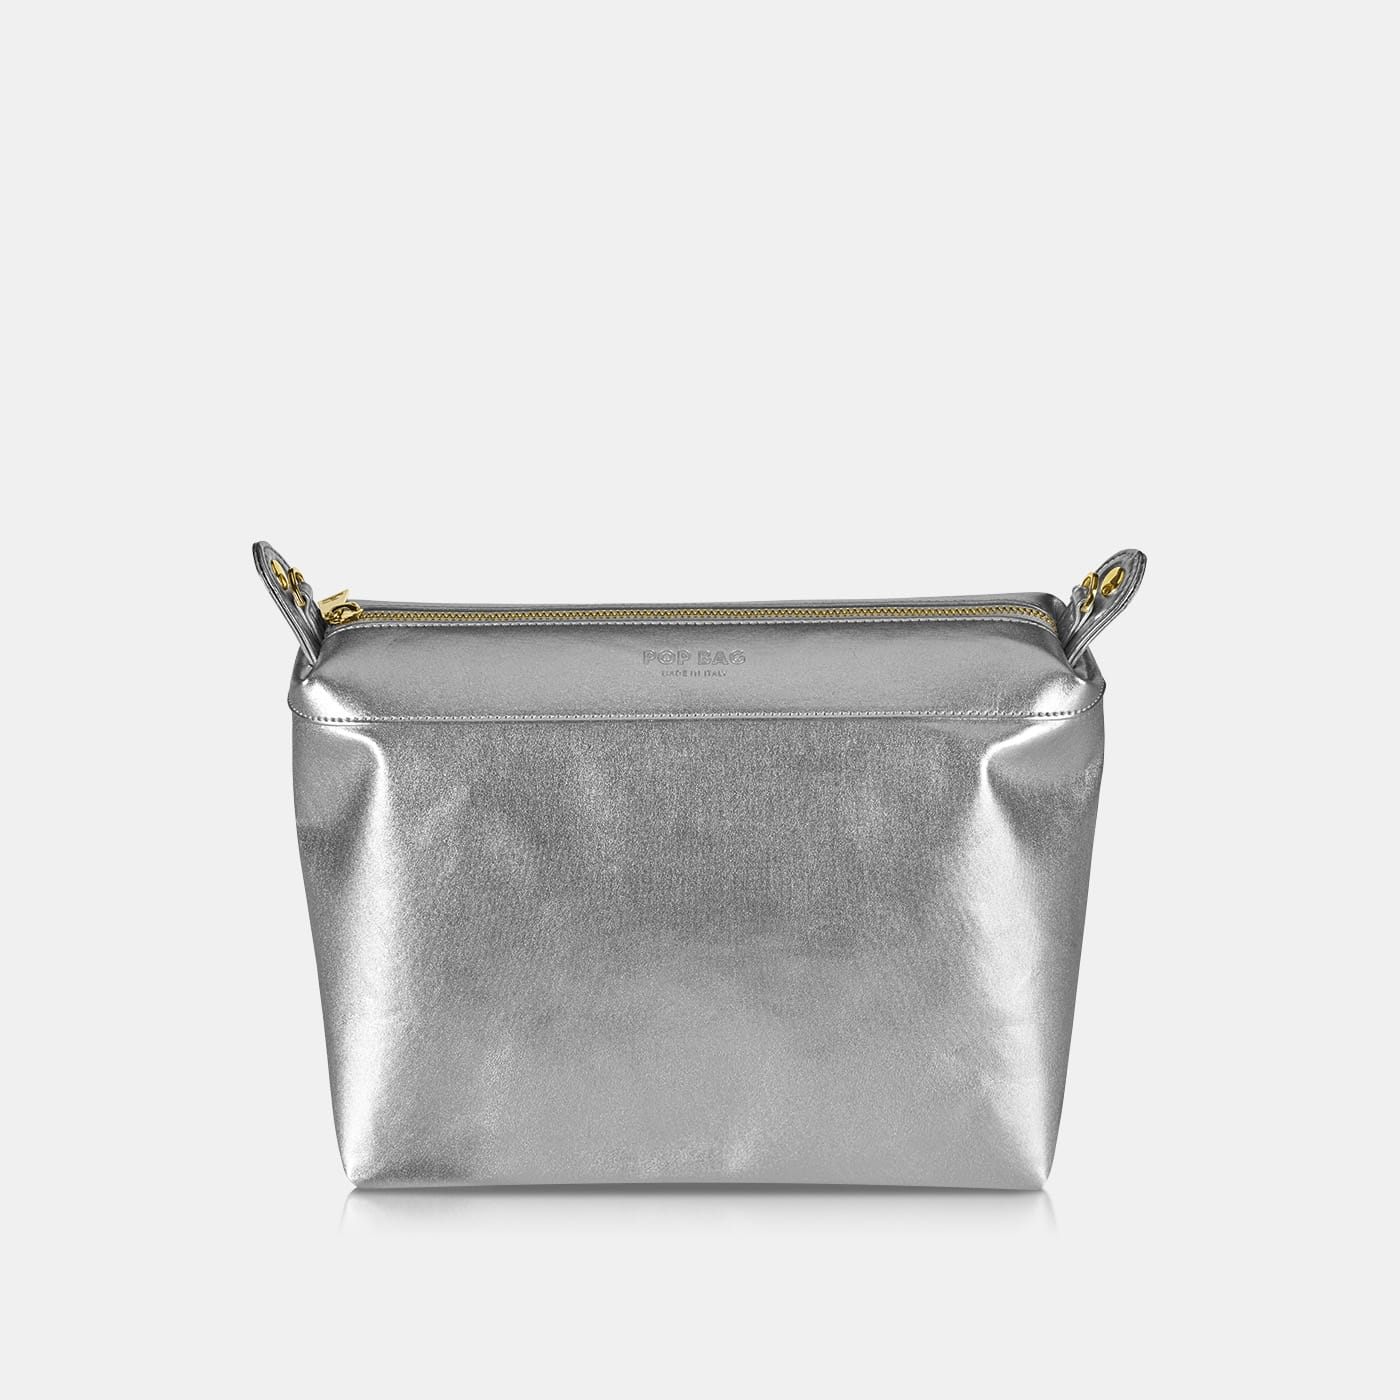 Bag In Bag - Metallic - Steel Metal - Medium